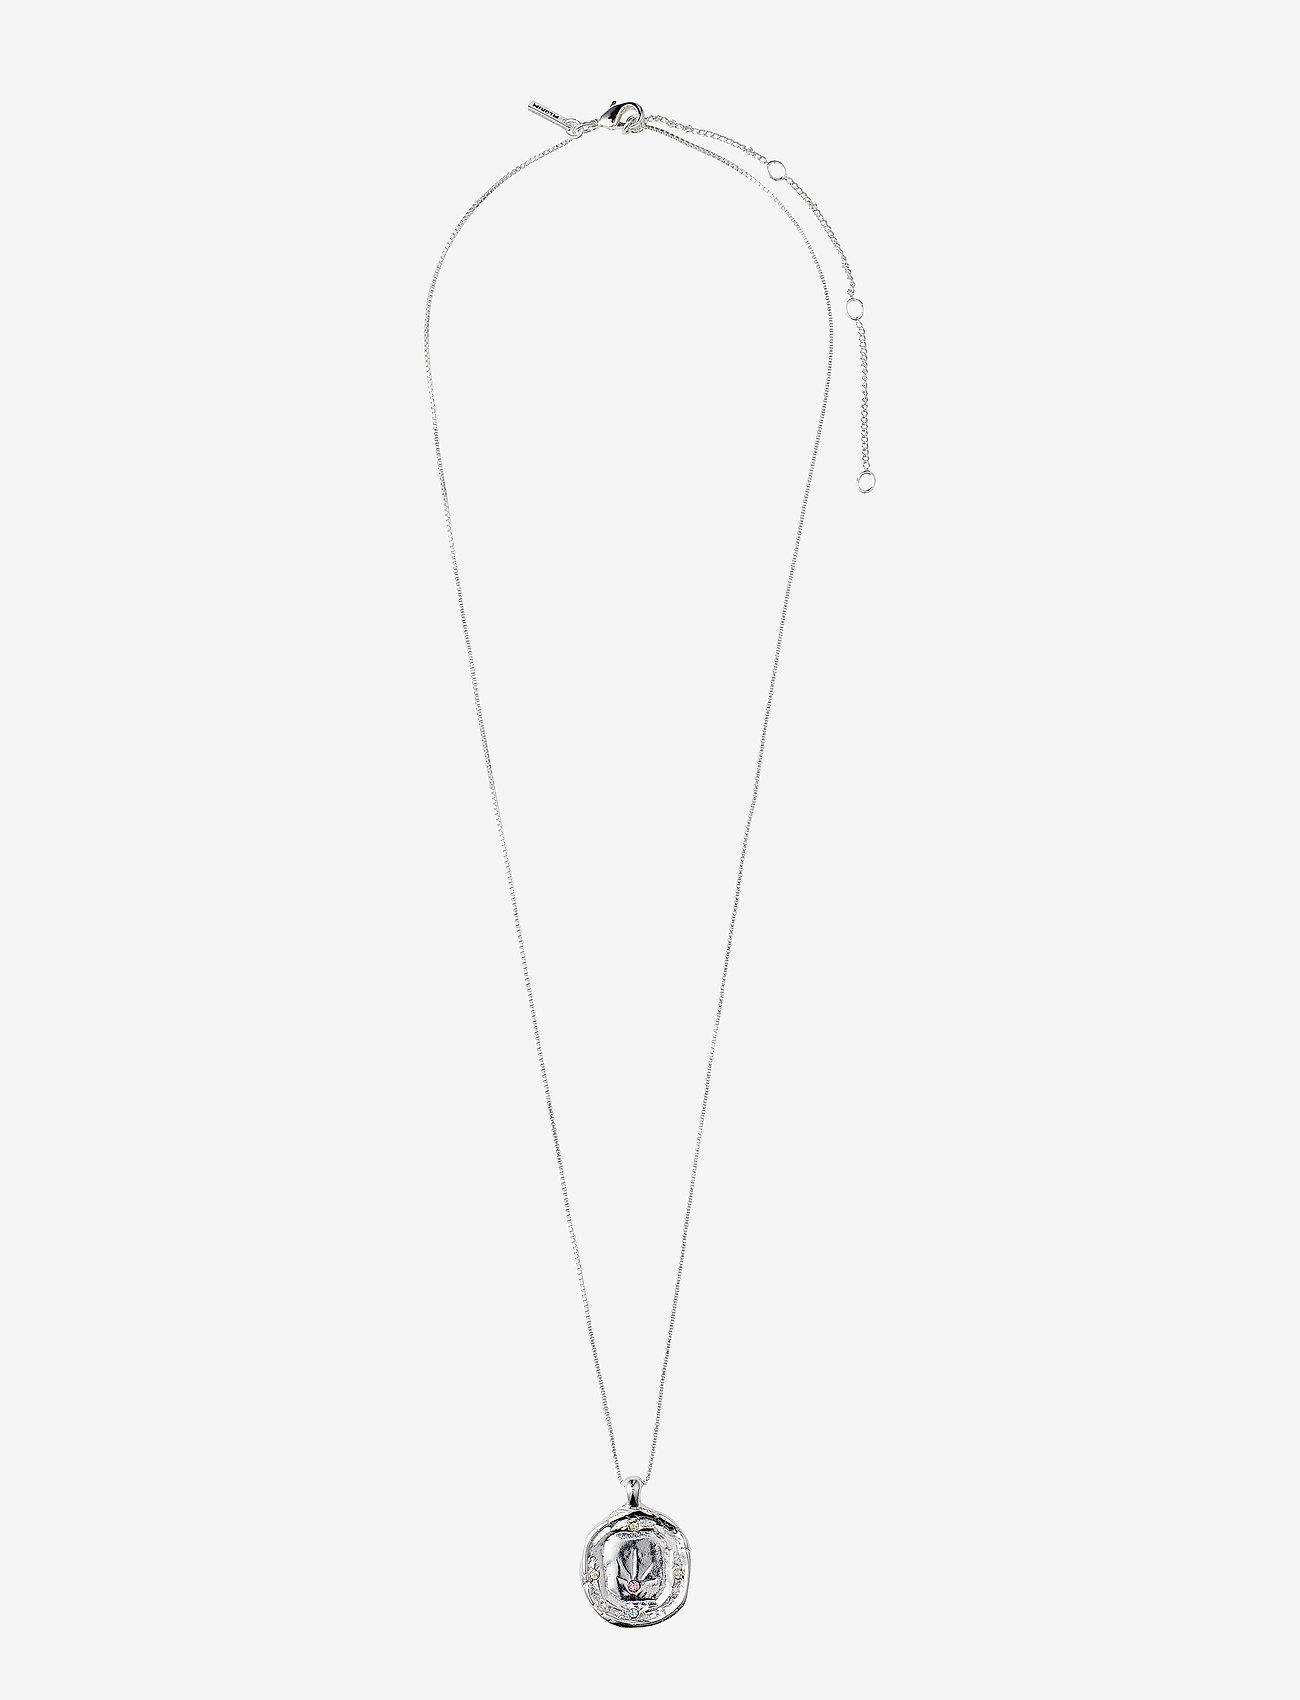 Feelings Of L.a. (Silver Plated) (17.48 €) - Pilgrim lUOqe